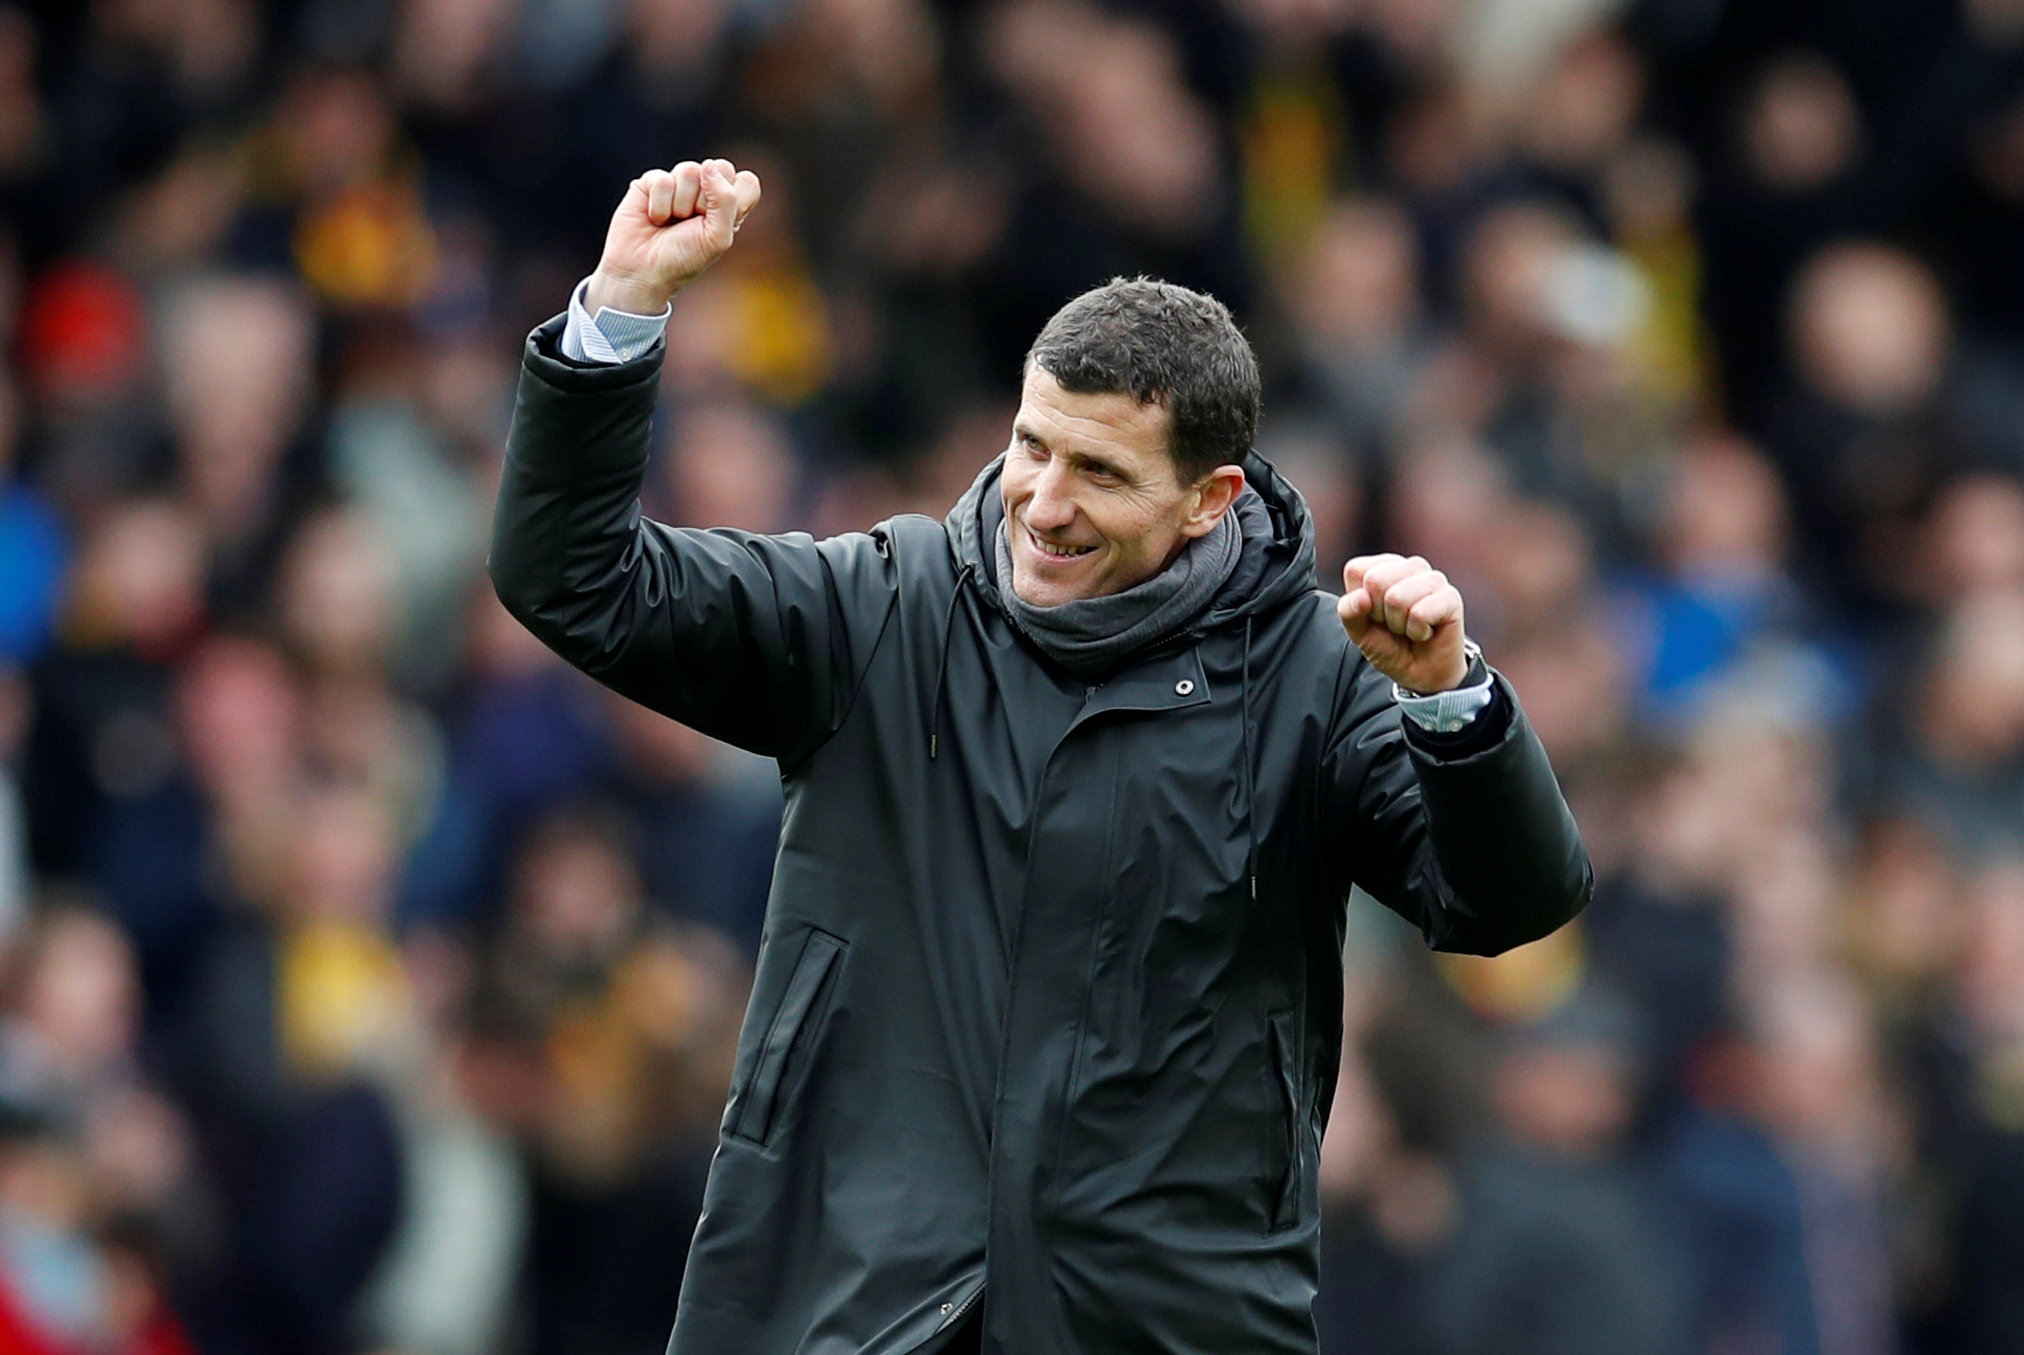 A delighted Javi Gracia celebrates at full-time. Picture: Action Images